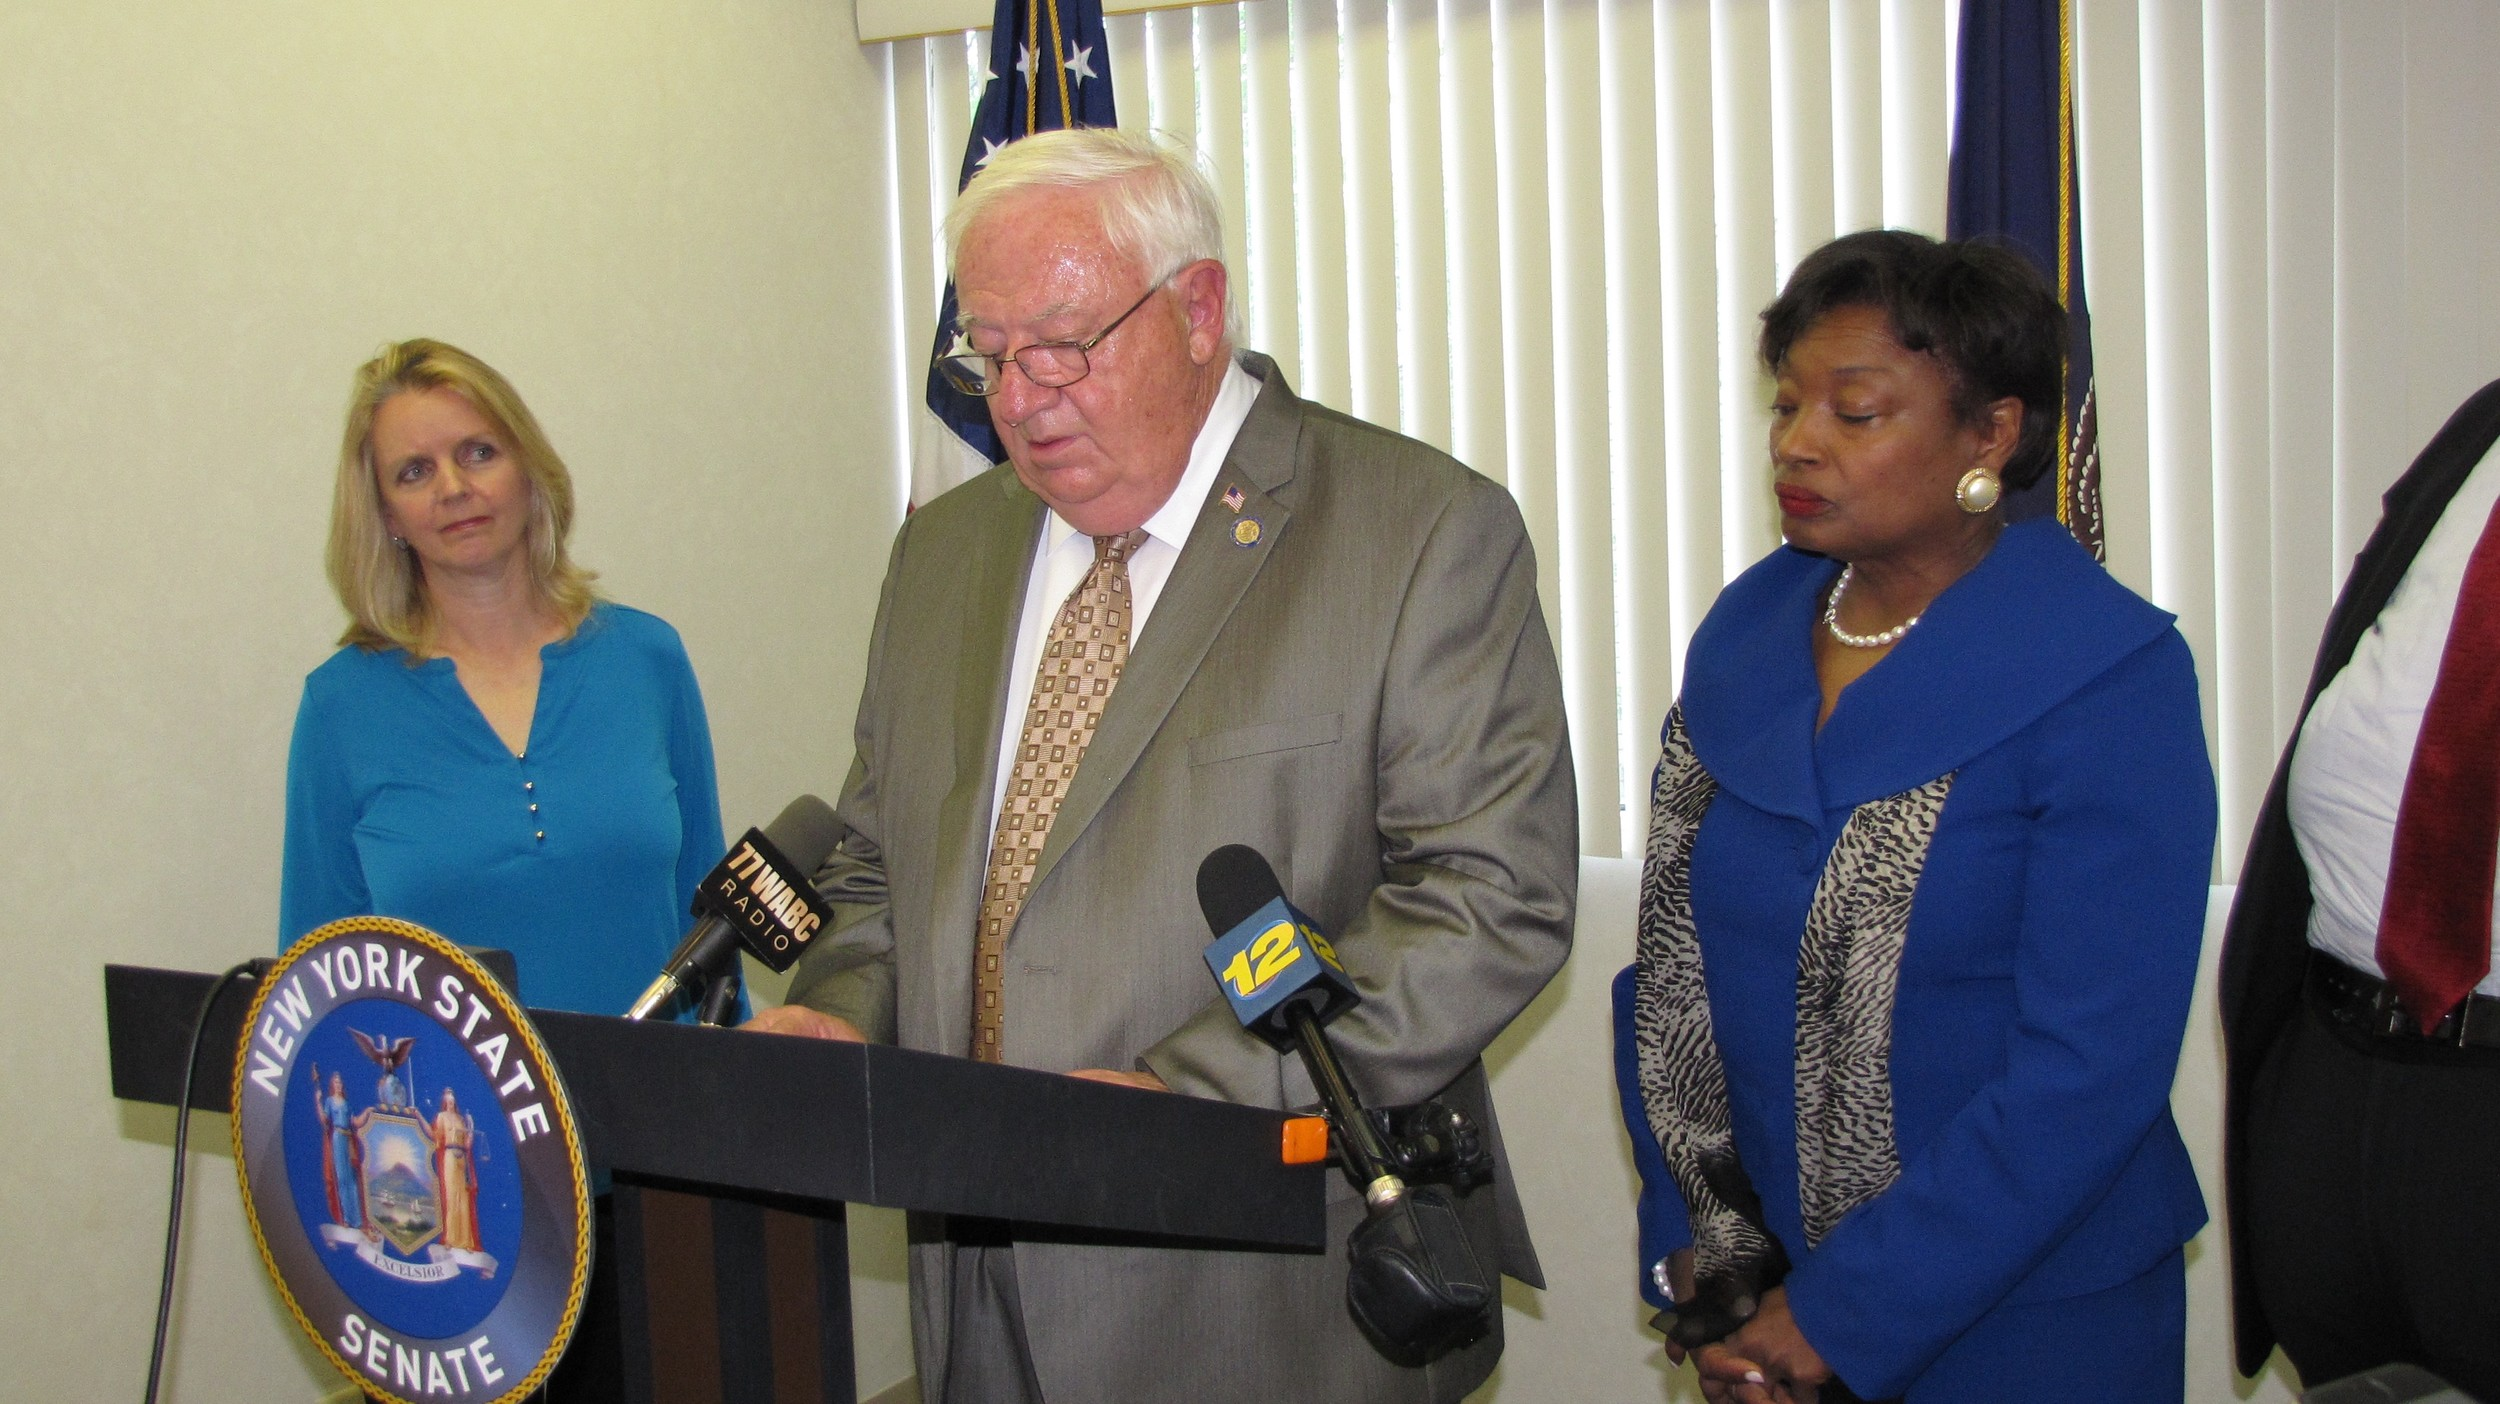 Village of Freeport Trustee Debra Mule, left, represented the village during a news conference last week on illegal dumping and Superfund cuts with State Sen. John Brooks and Senate Democratic Leader Andrea Stewart-Cousins.